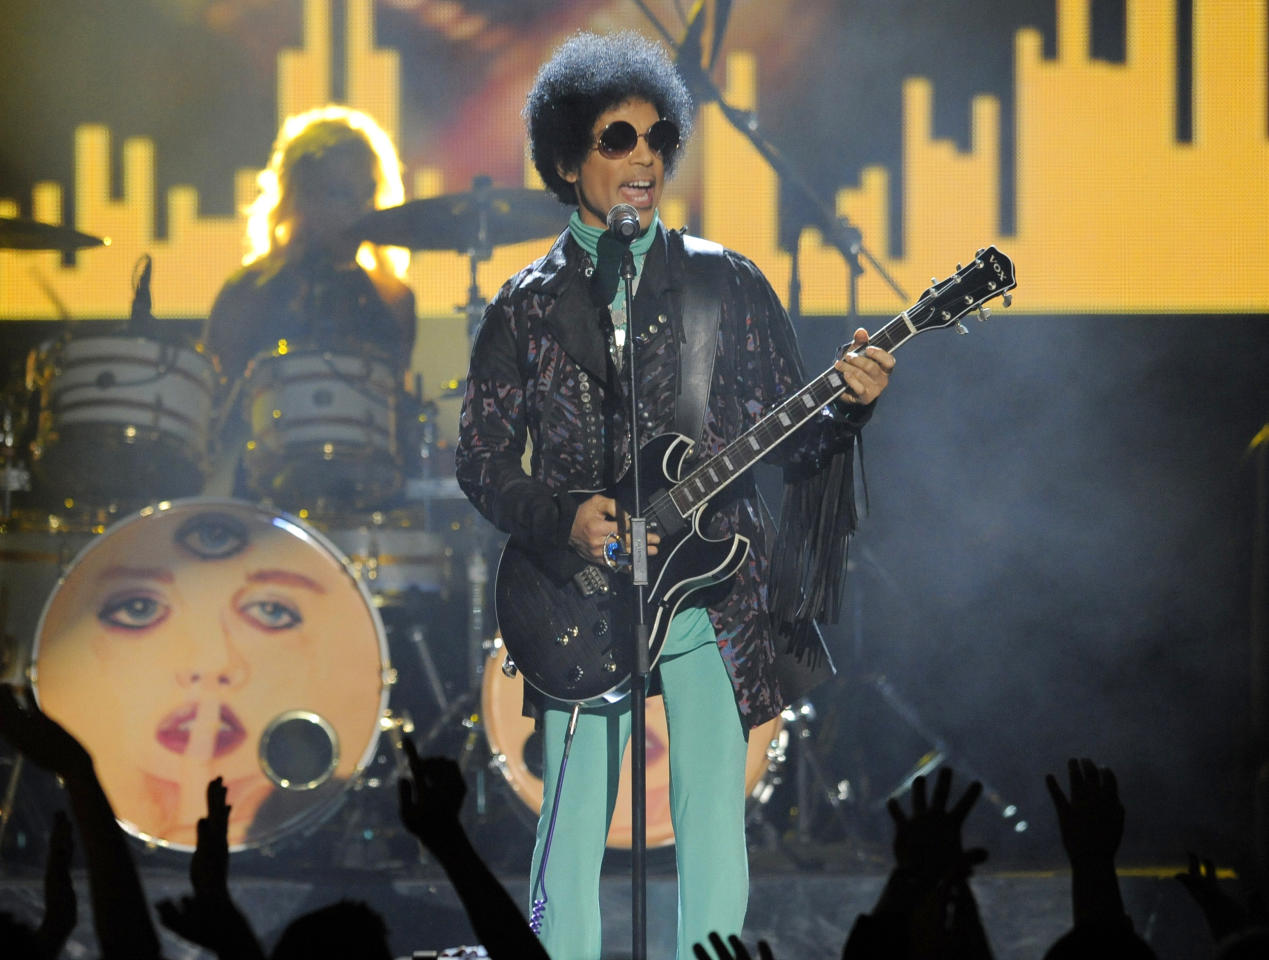 <p> FILE - In this May 19, 2013, file photo, Prince performs at the Billboard Music Awards at the MGM Grand Garden Arena in Las Vegas. In a newspaper report published Wednesday, May 4, 2016, Prince had arranged to meet a California doctor to try to kick an addiction to painkillers shortly before his death. (Photo by Chris Pizzello/Invision/AP, File) </p>